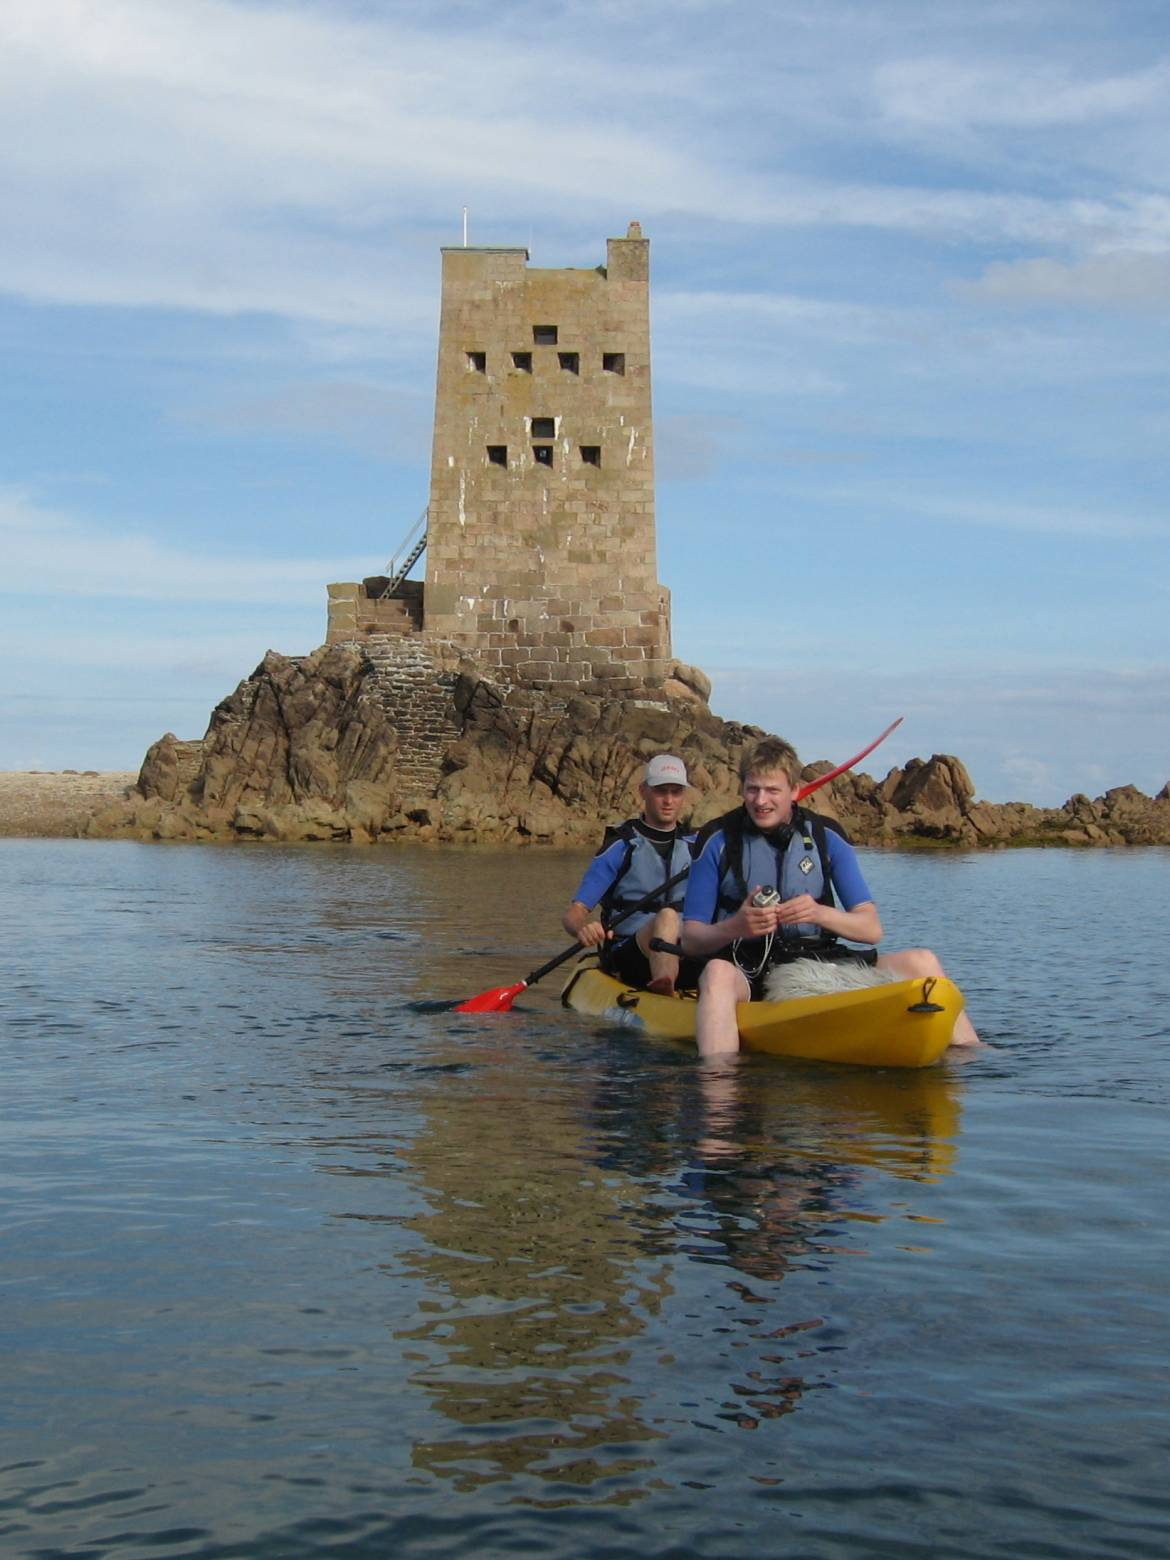 Kayak-adventures-at-Seymour-tower-Jersey-IMG_3808.jpg